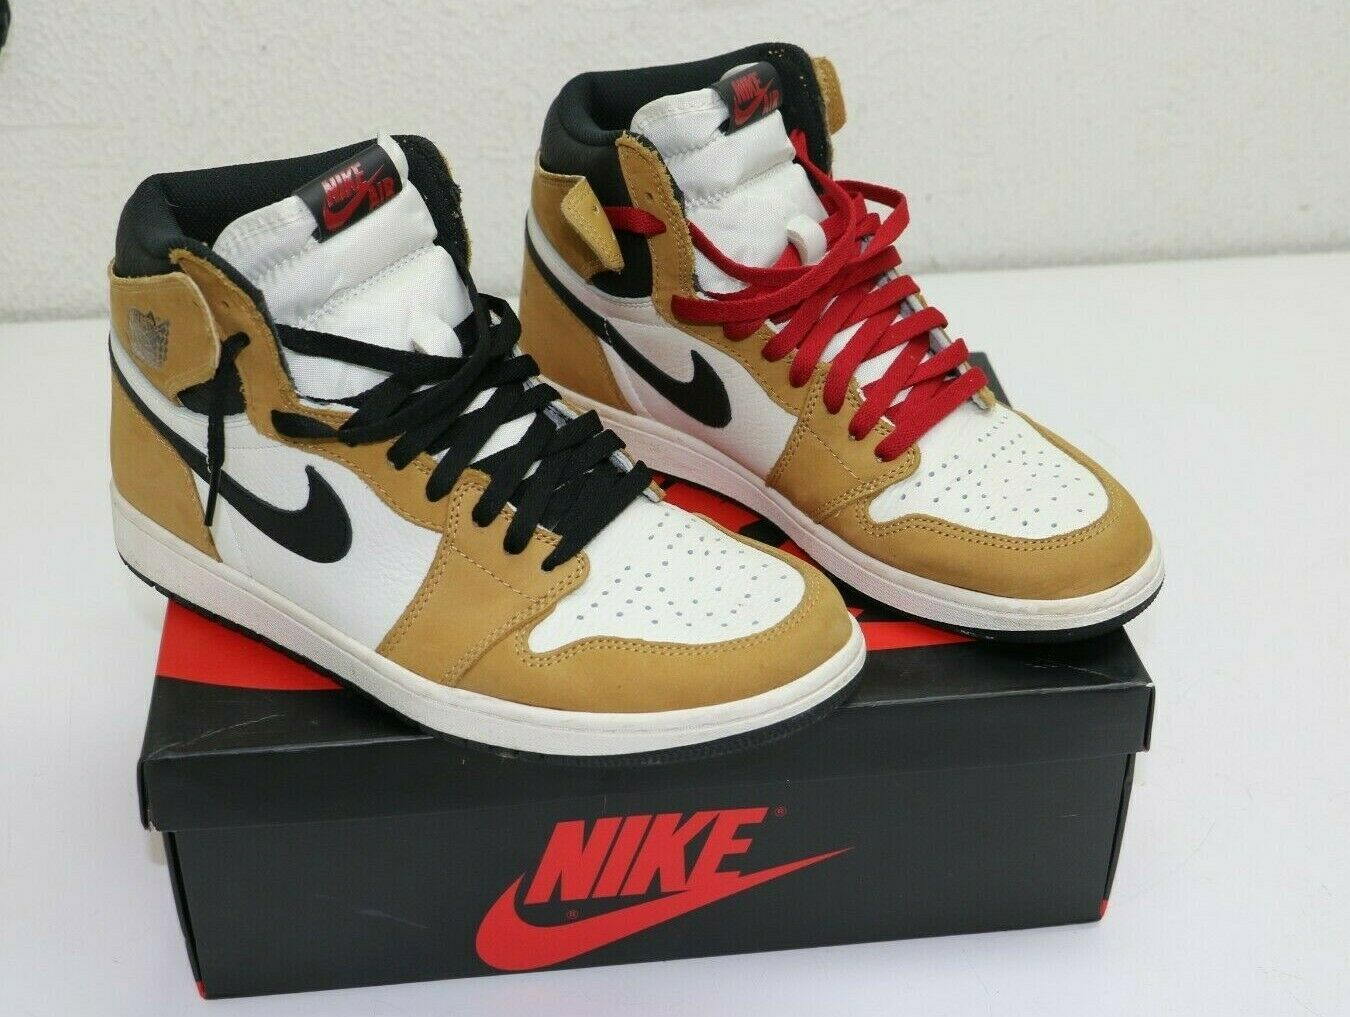 Nike Air Jordan 1 Retro High Og Roty Golden Harvest Black Size